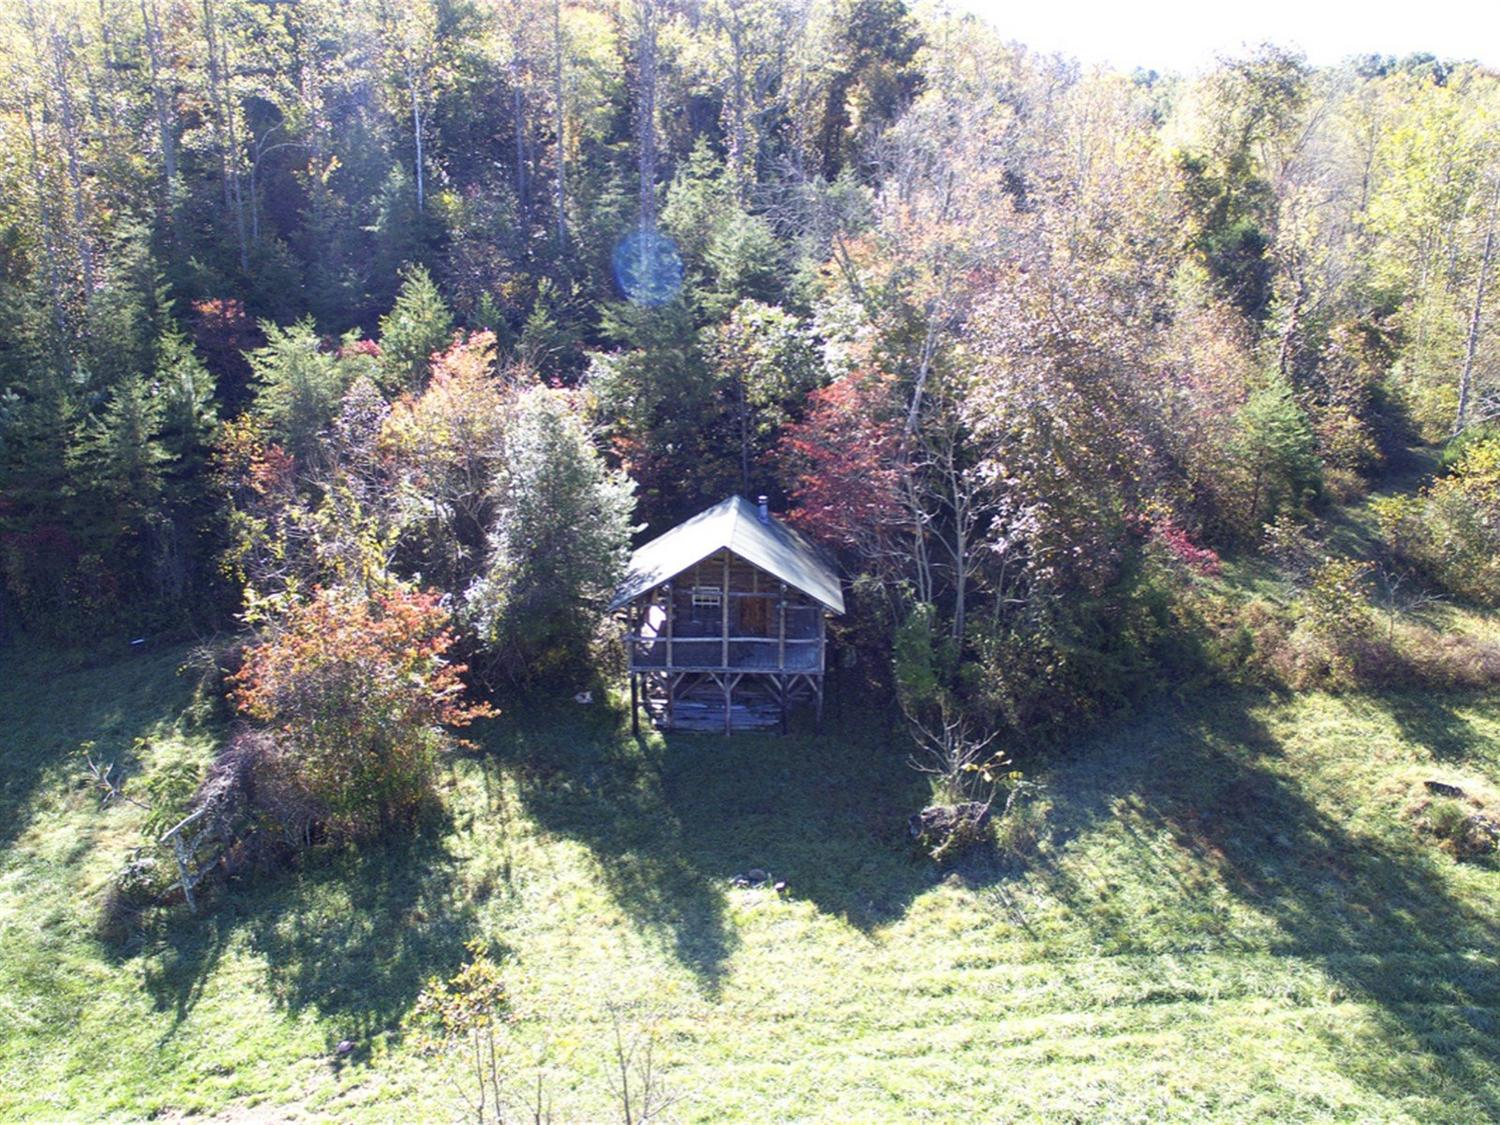 Property for sale at 11238%20Campton%20Rd,%20Stanton,%20KY%2040376